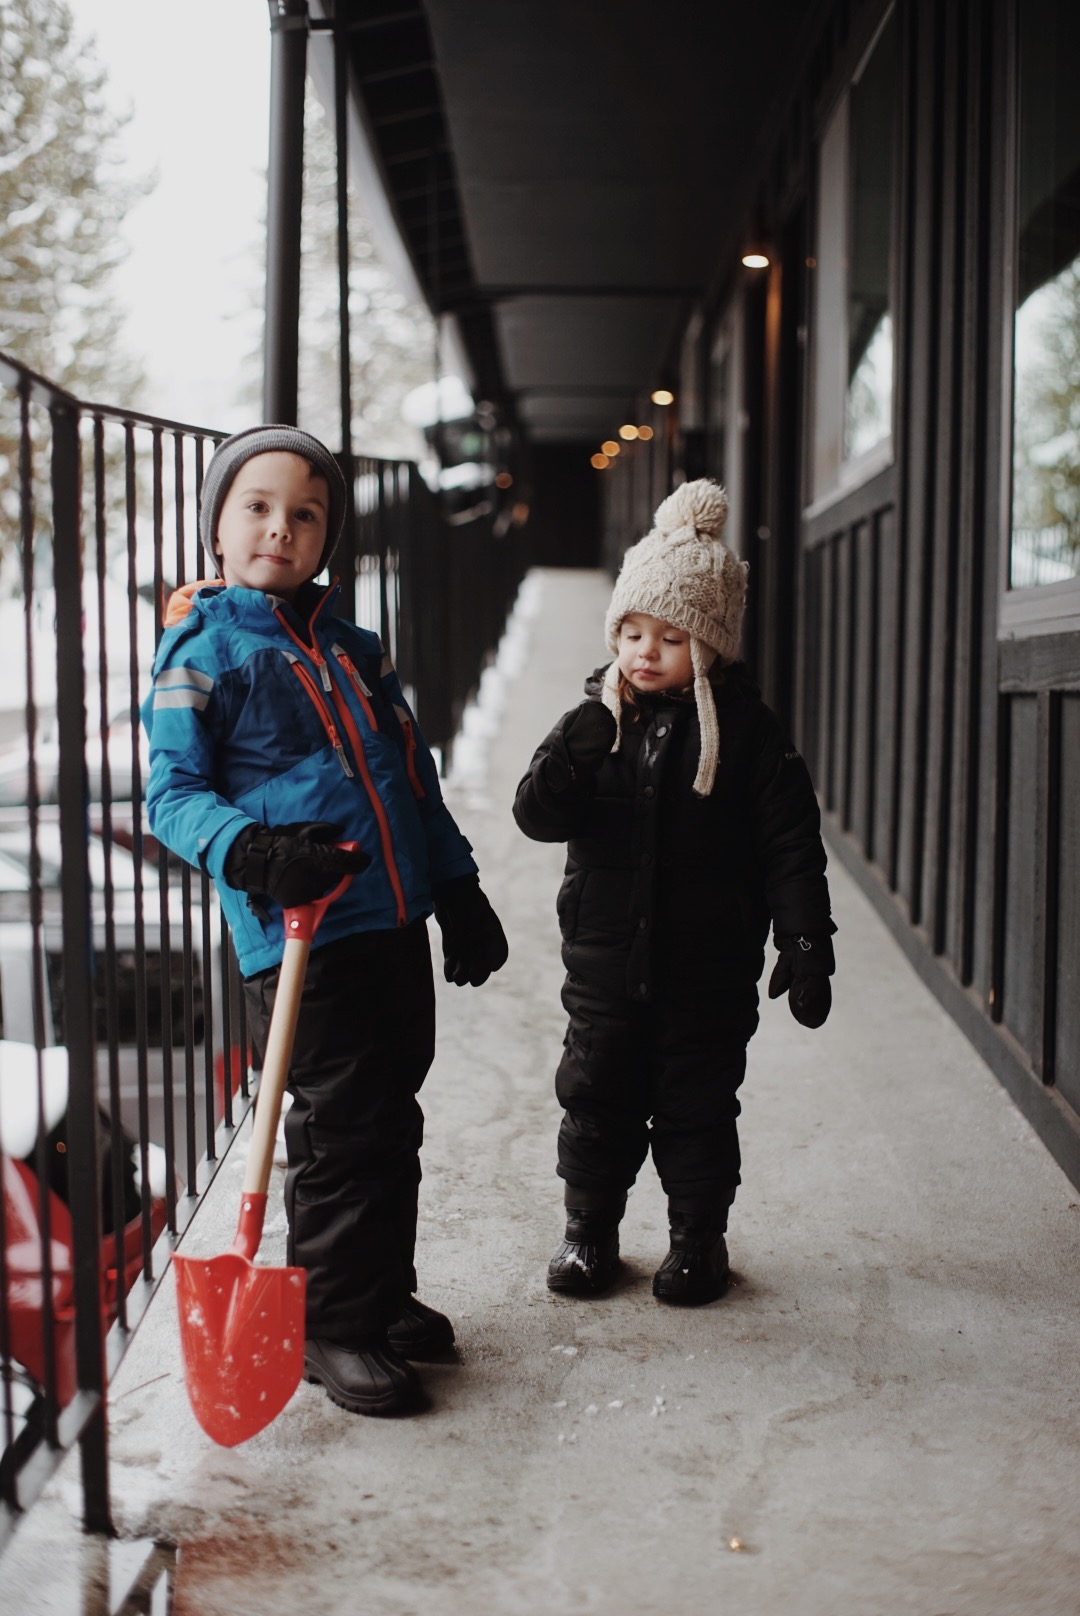 The kids absolutely love the snow despite how cold it was.